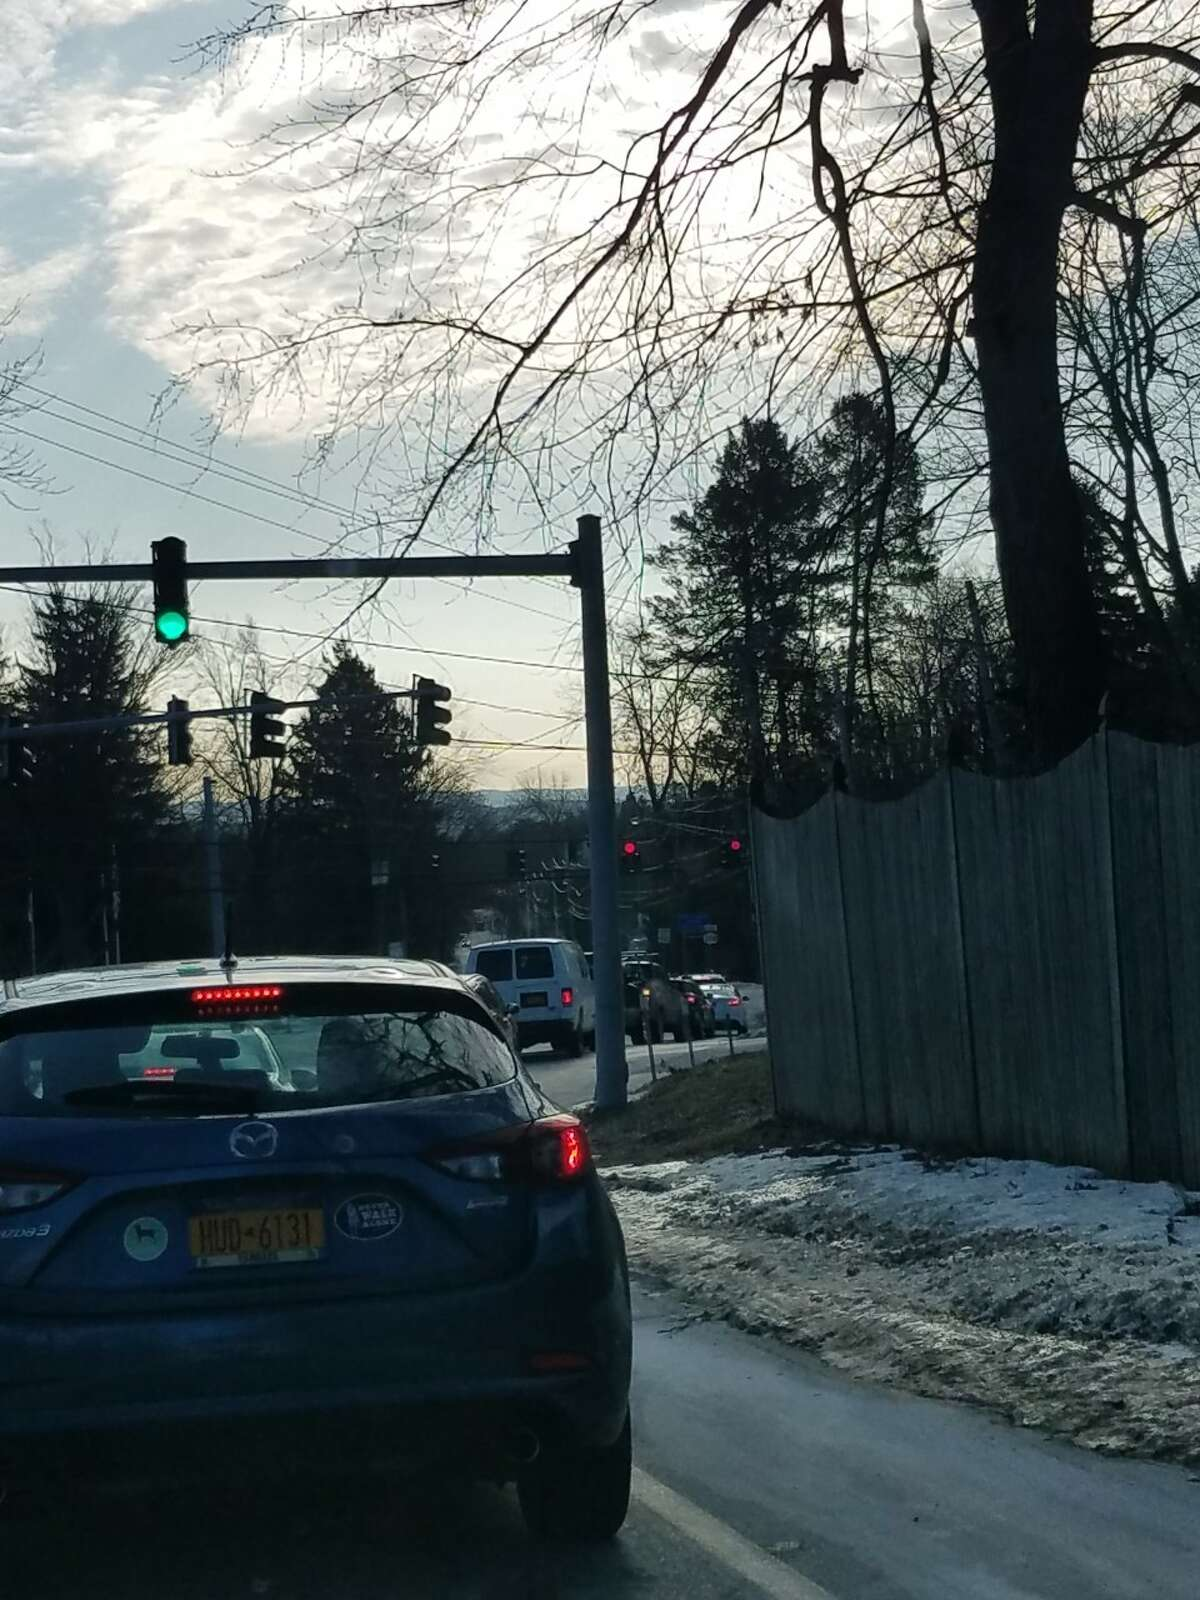 The light is green at Osborne Road, but cars can't move through because the light is red at Route 9, causing cars to back up through the intersection.